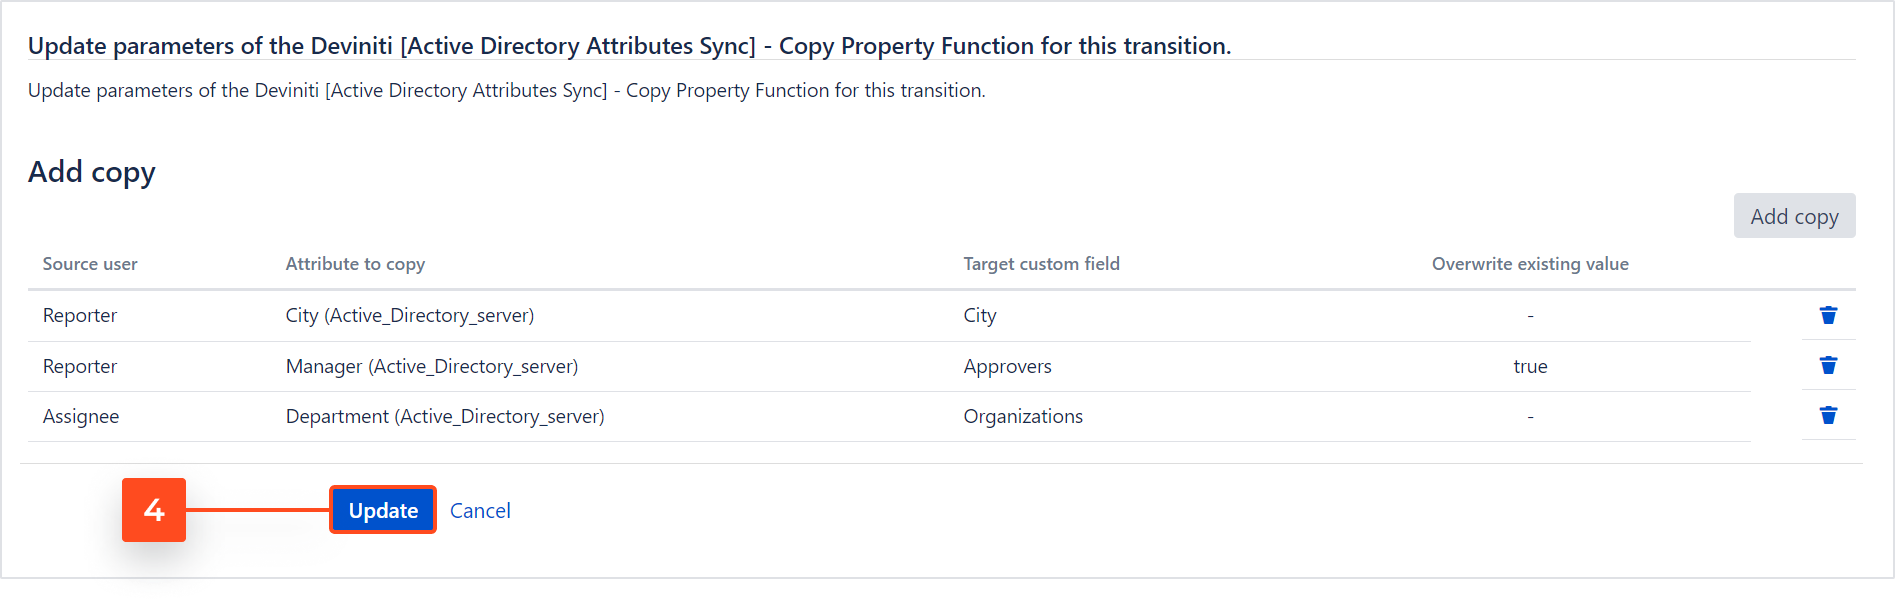 Active Directory Attributes Sync for Jira - Copy Property: Update Post Function